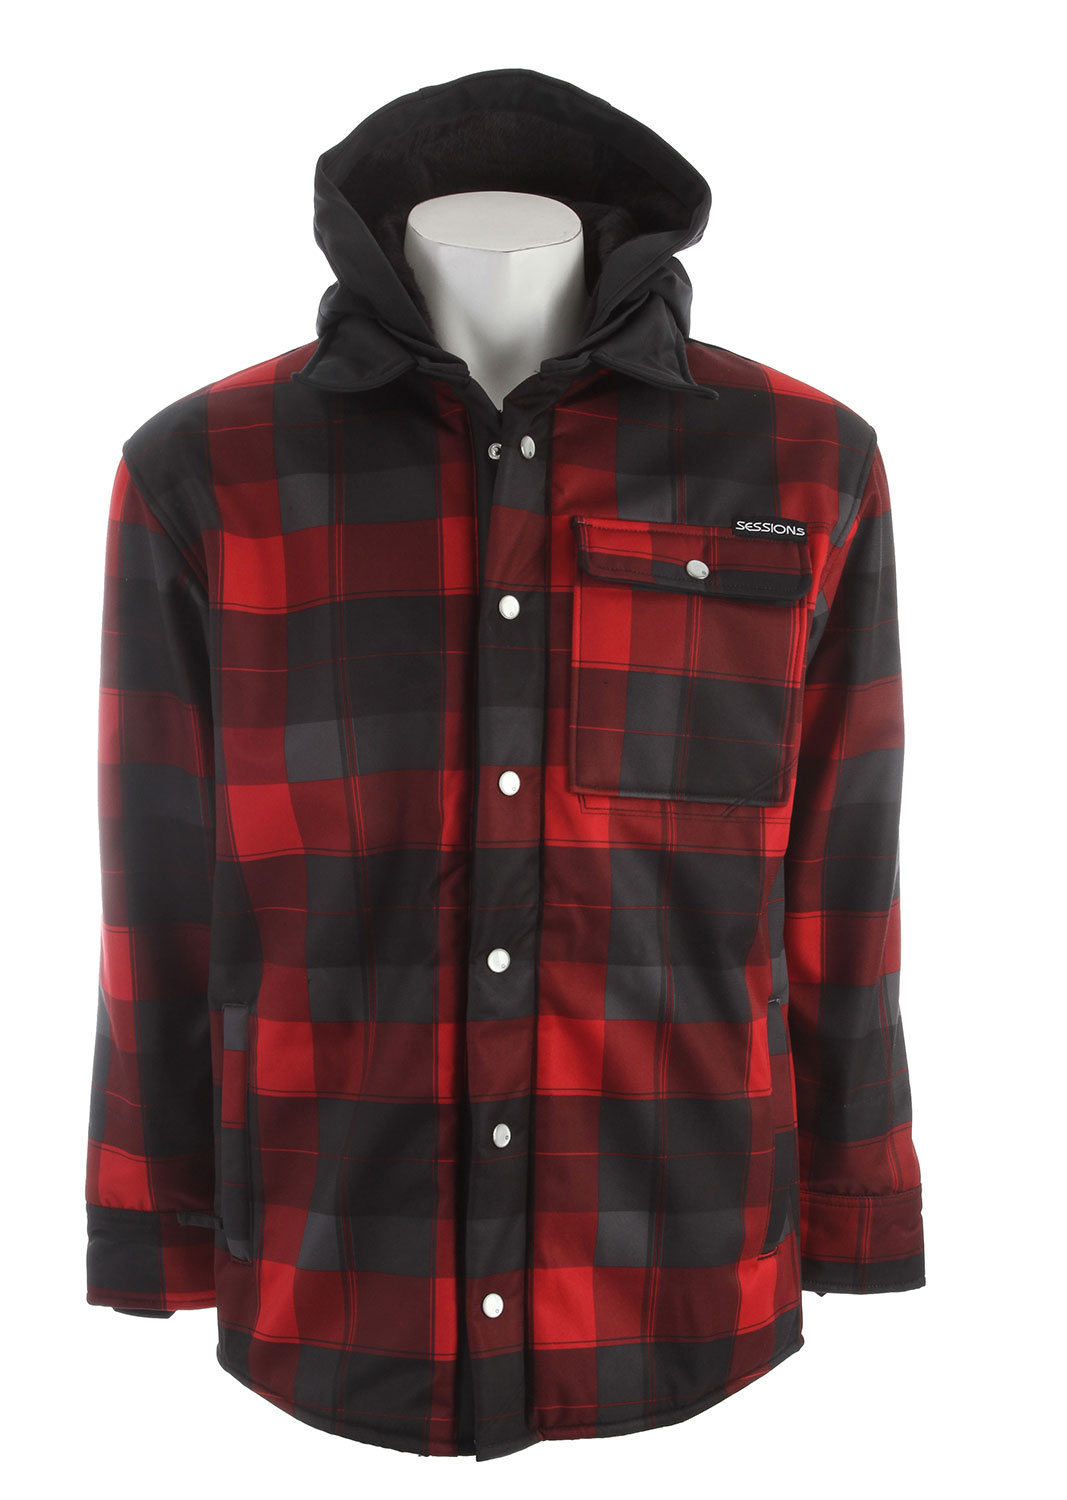 Key Features of the Sessions Outlaw Plaid Softshell Shell: 100% Polyester Lining: 100% Polyester Softshell Twill Fabrication Bonded Sherpa Interior Lycra Hand Gaiters - $113.95